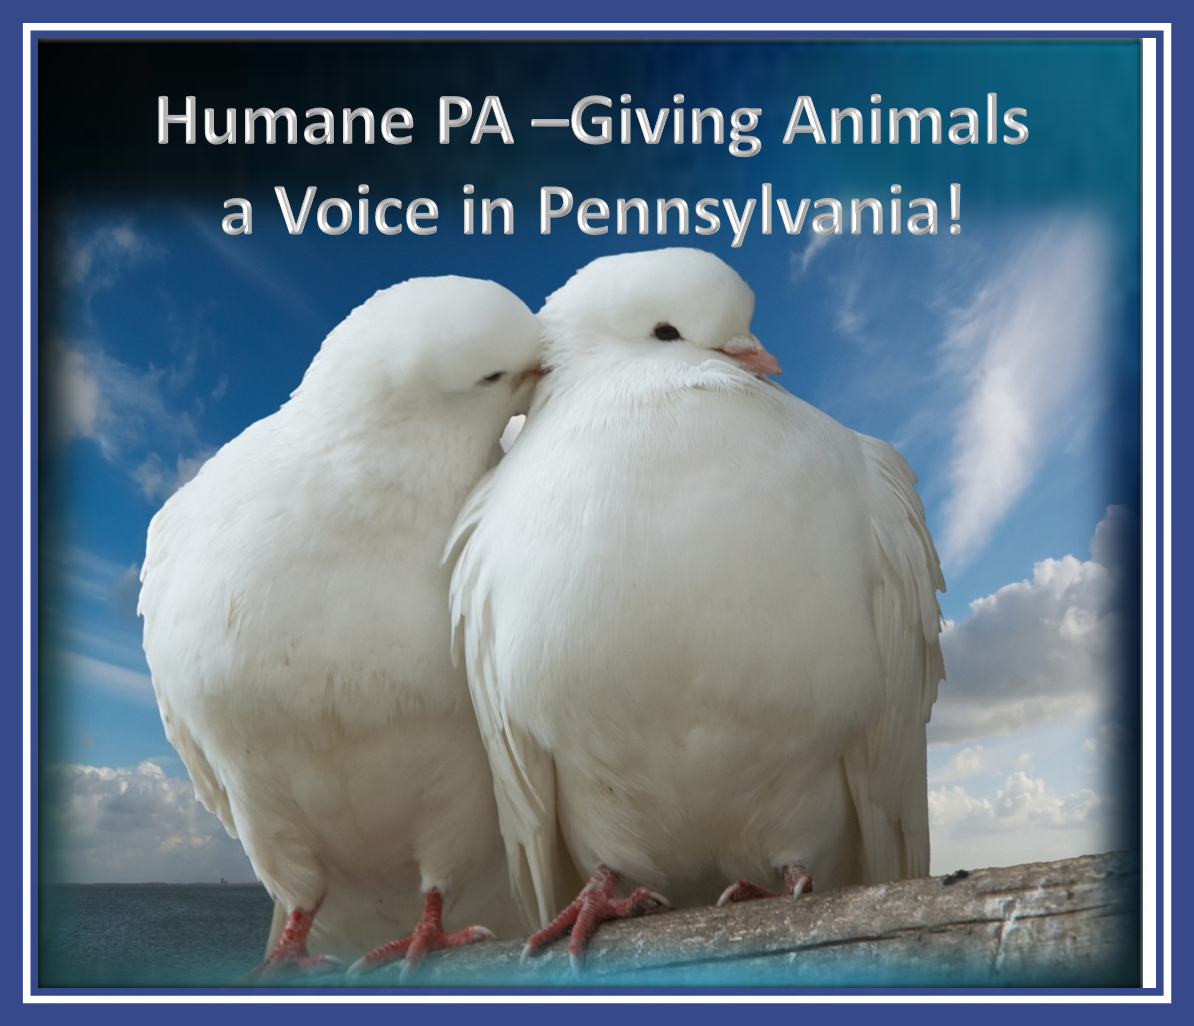 Humane pa sample letters to the editor ending pigeon shoots there is currently a bill languishing in the state senate sb 612 that would ban cruel live pigeon shoot contests opponents of the bill try to spin to altavistaventures